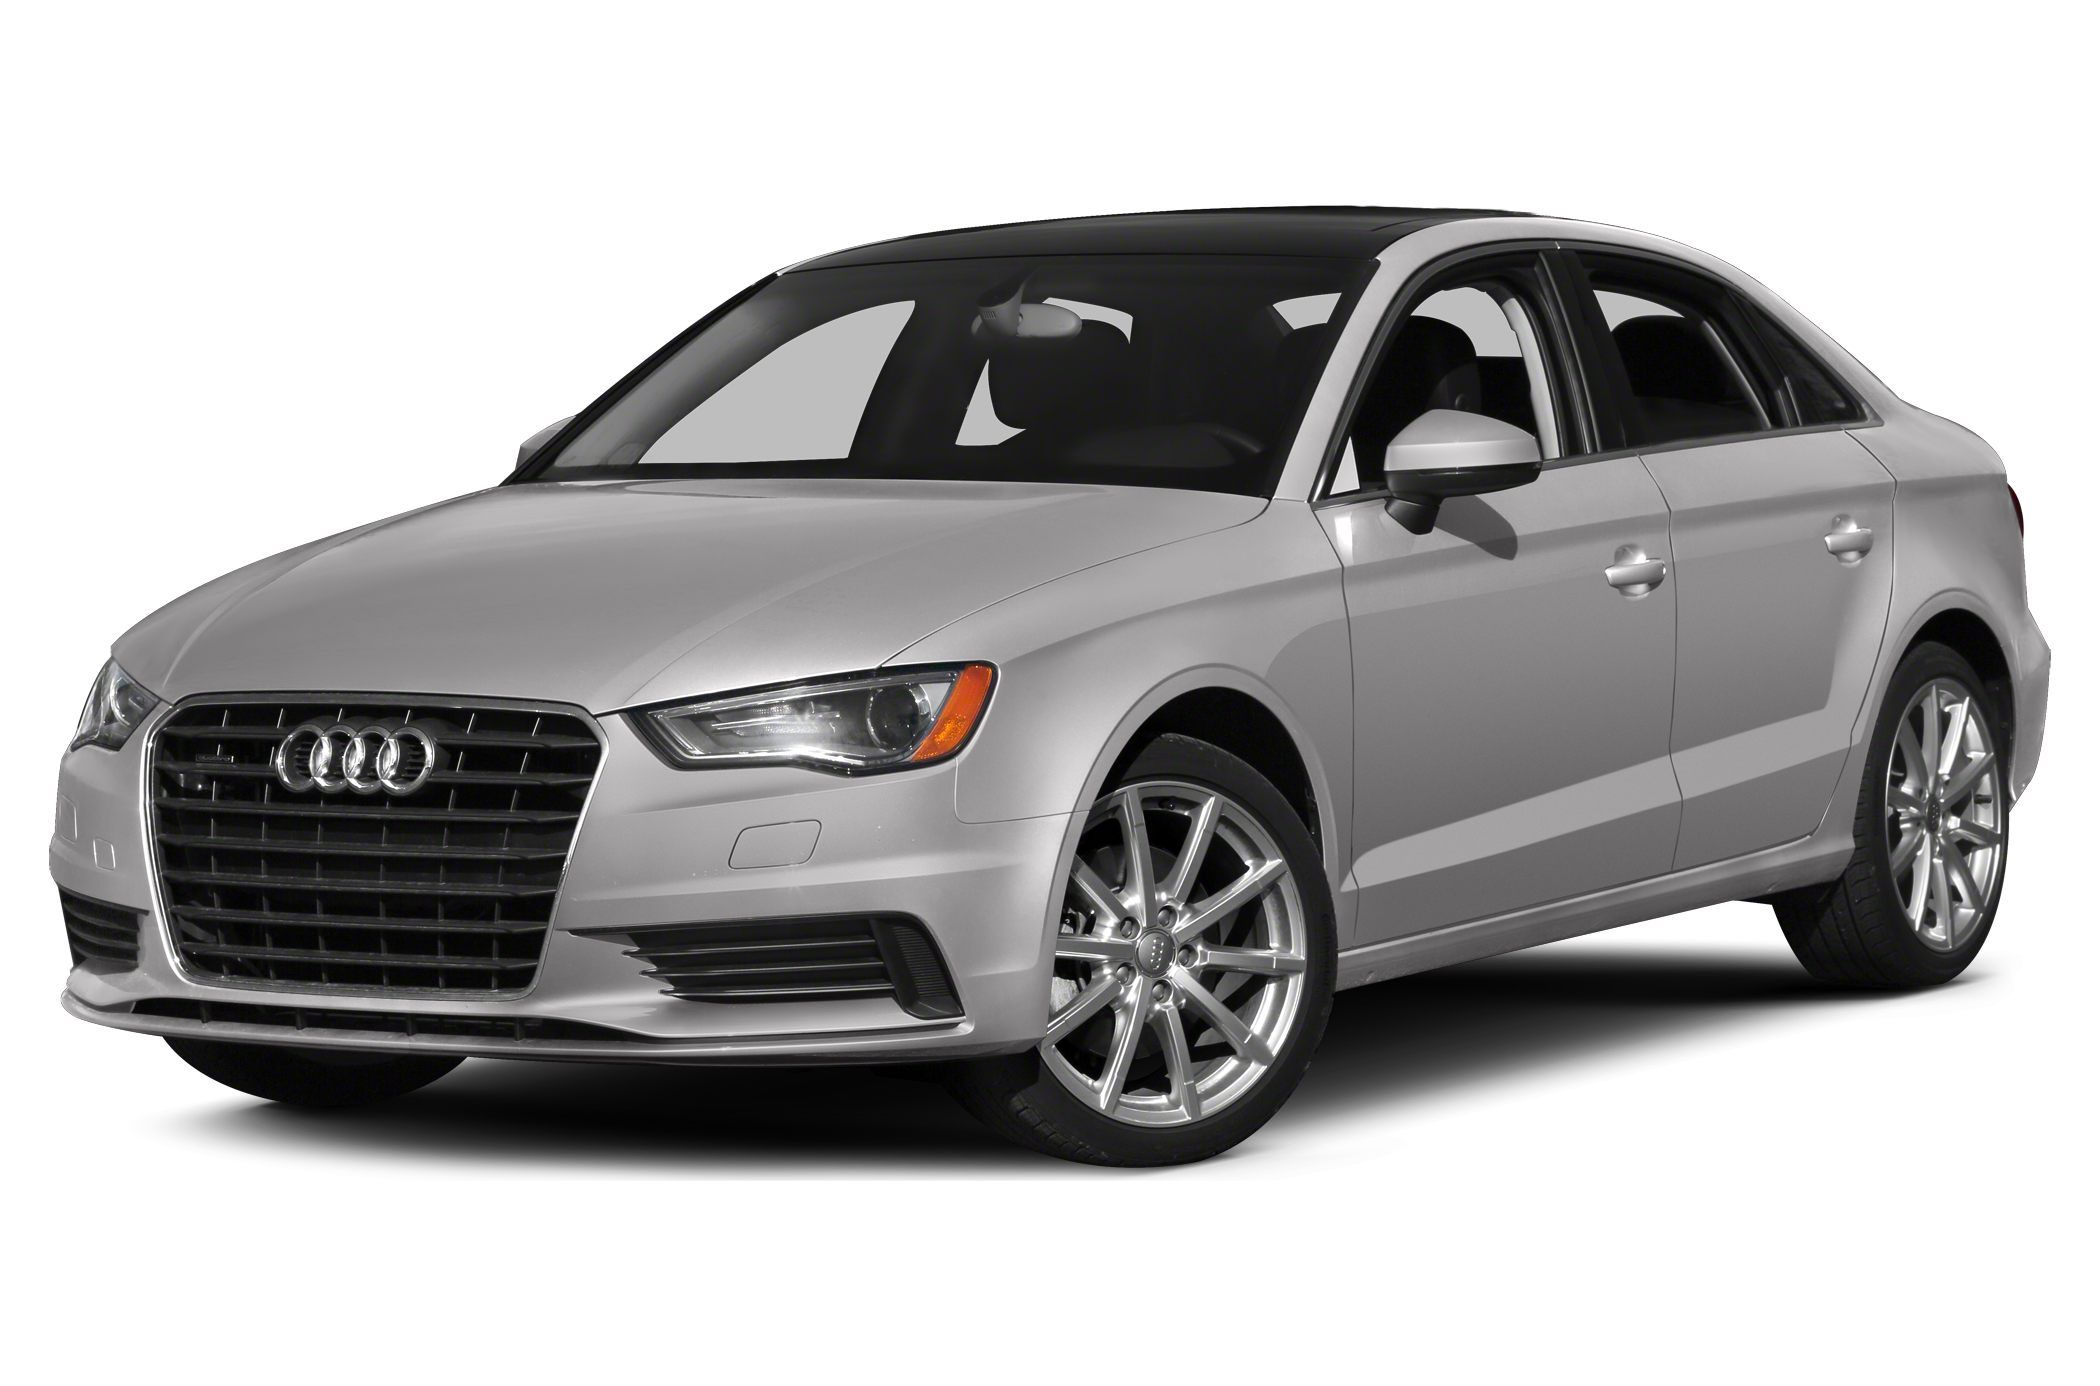 Find All New Audi Car Listings In India Enter QuikrCars To Find - Audi car details and price